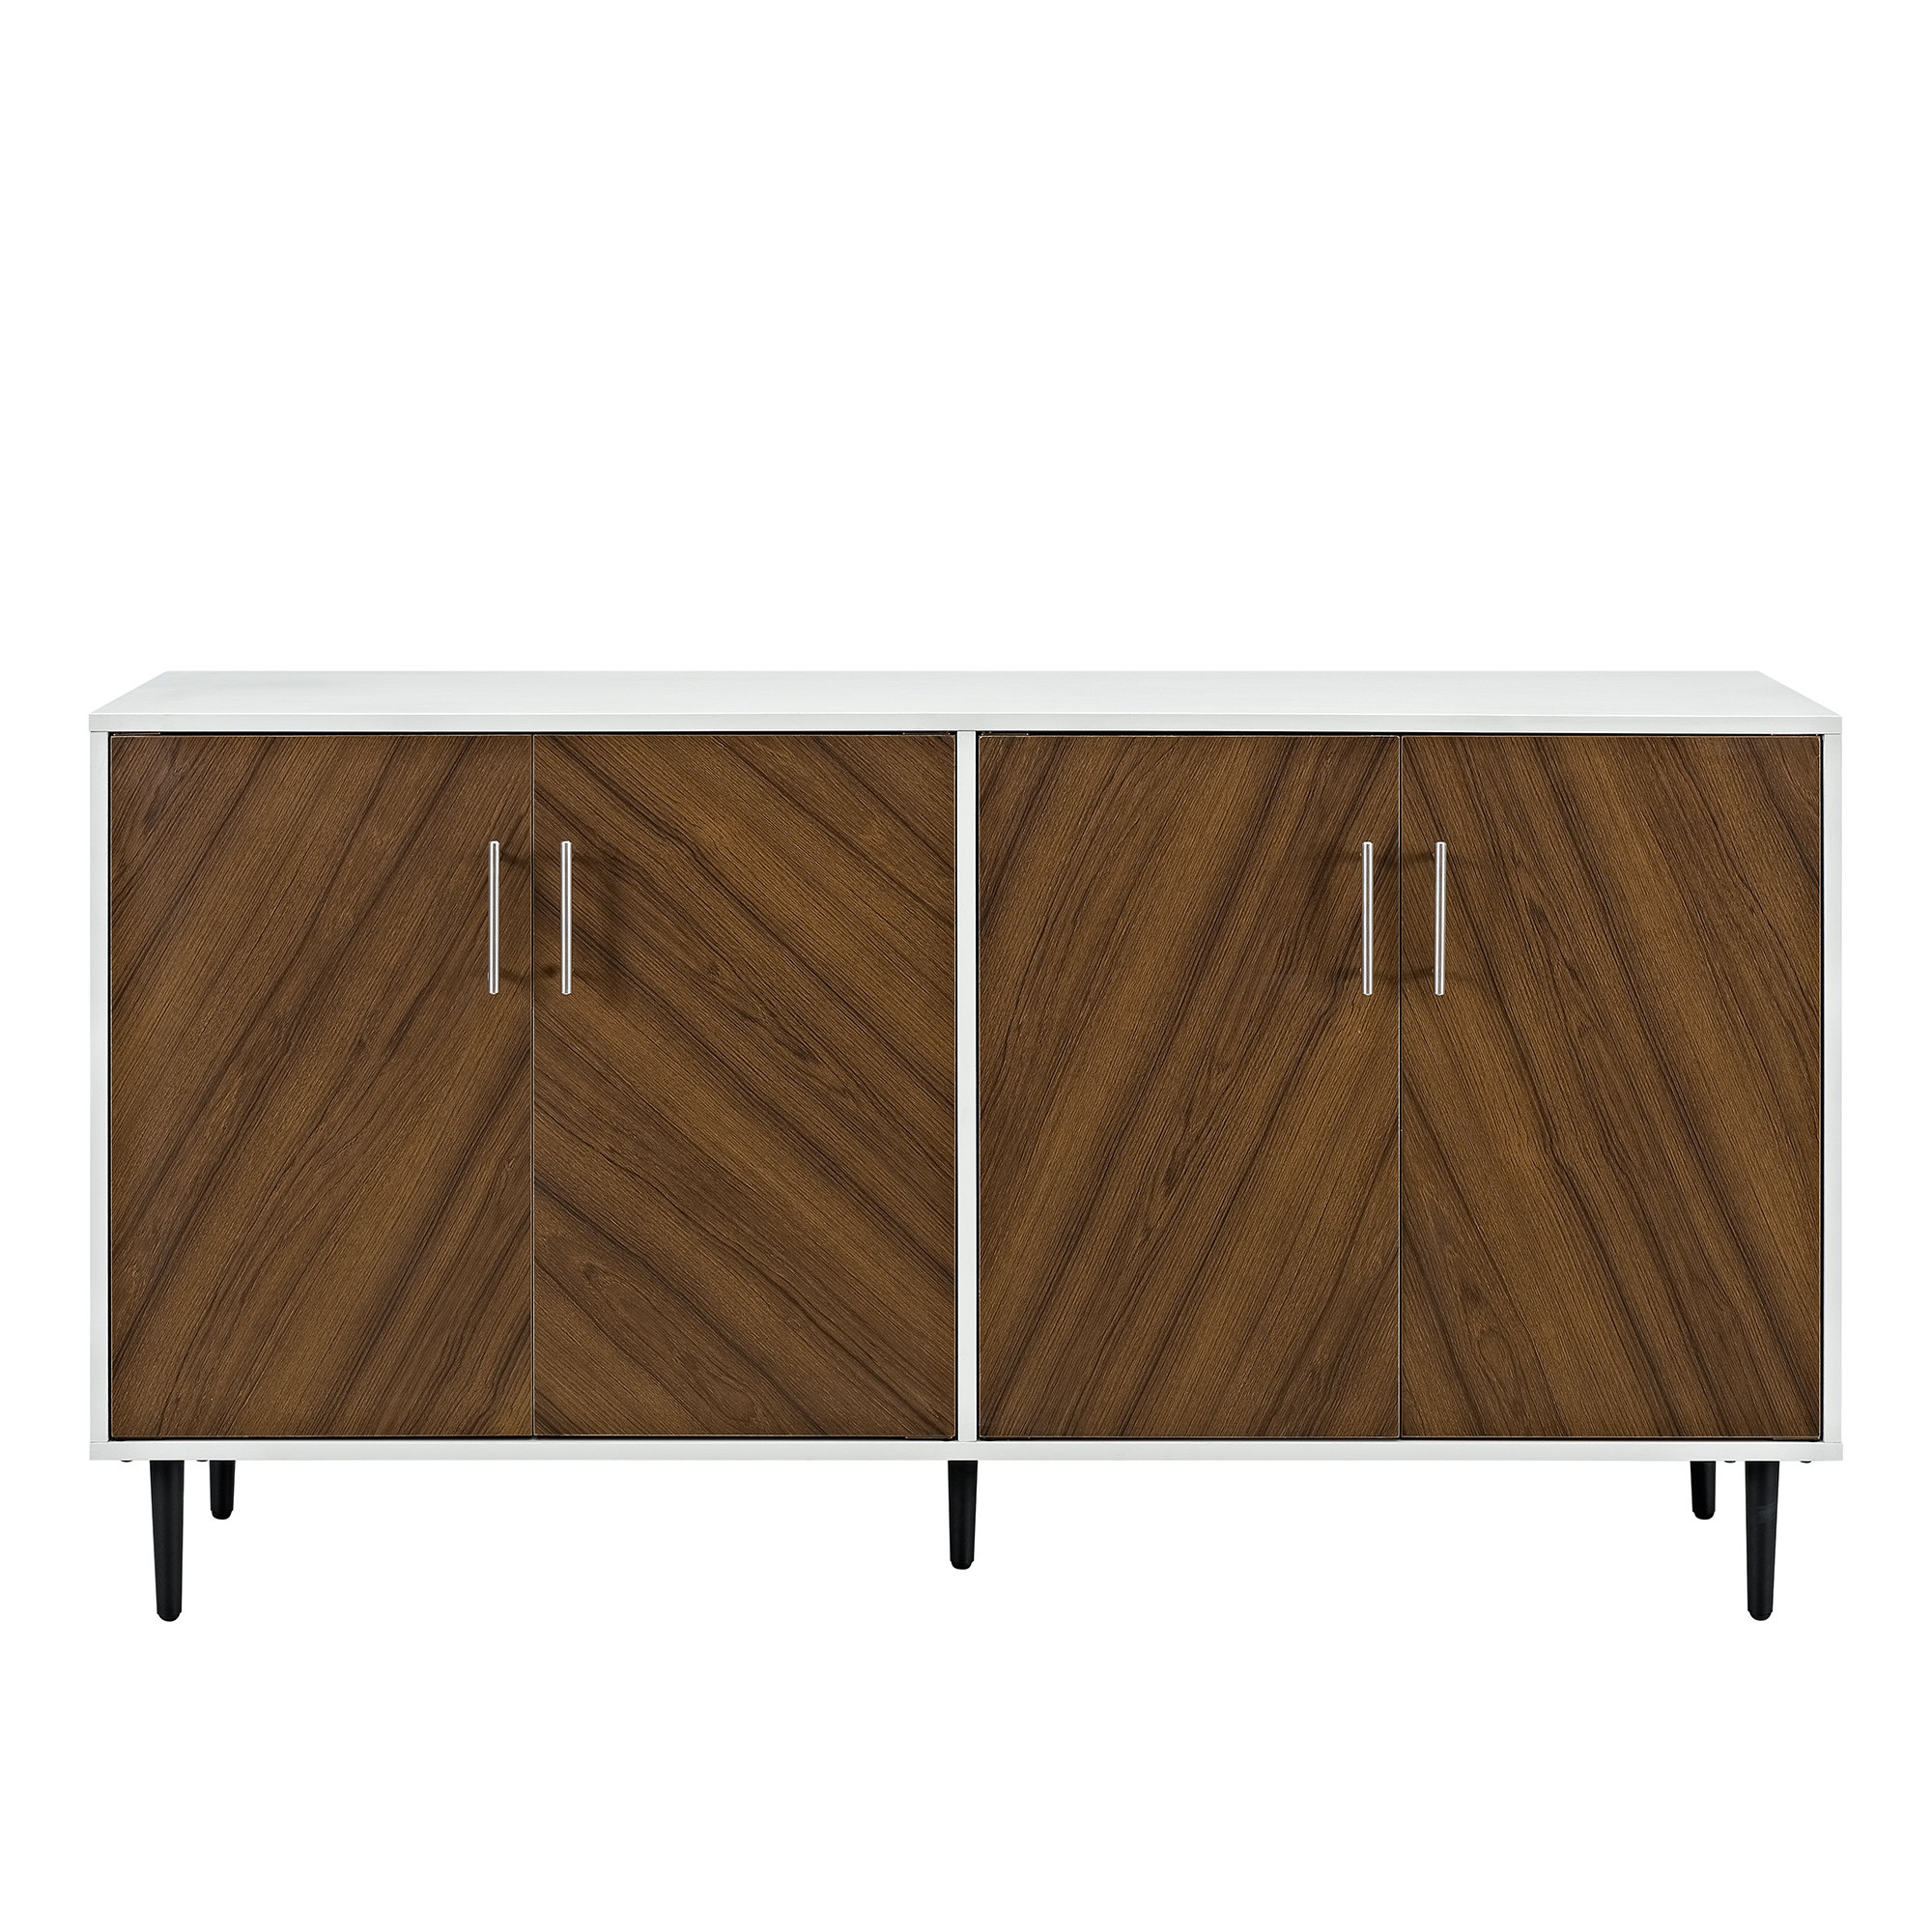 Keiko Modern Bookmatch Sideboard Pertaining To Mid Century Modern Glossy White Buffets (View 8 of 20)